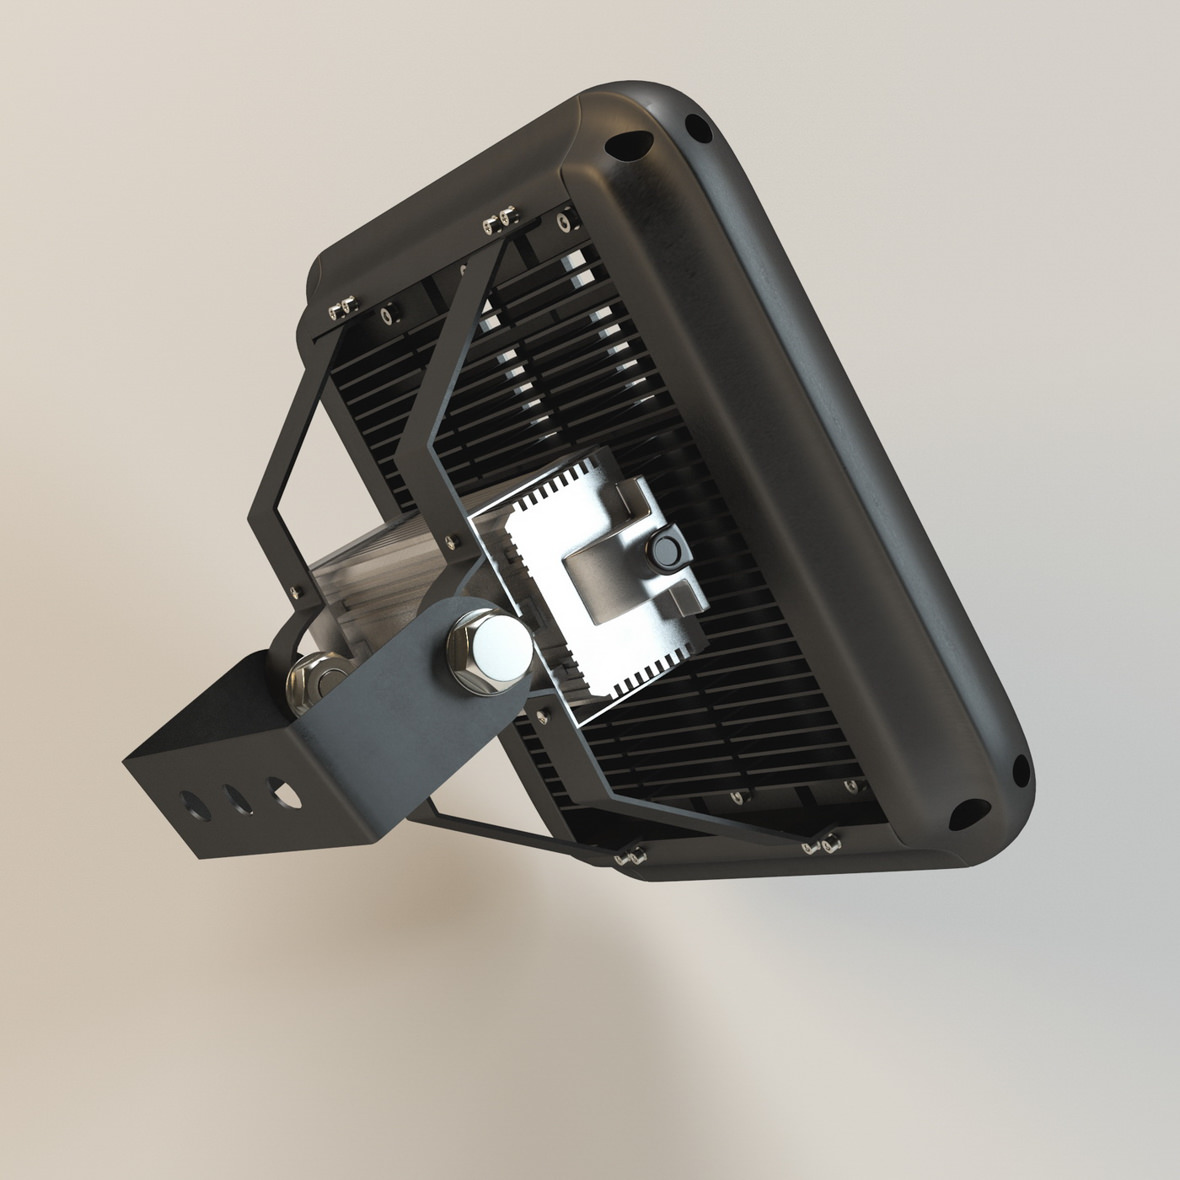 3D rear view of industrial LED fixture in black case